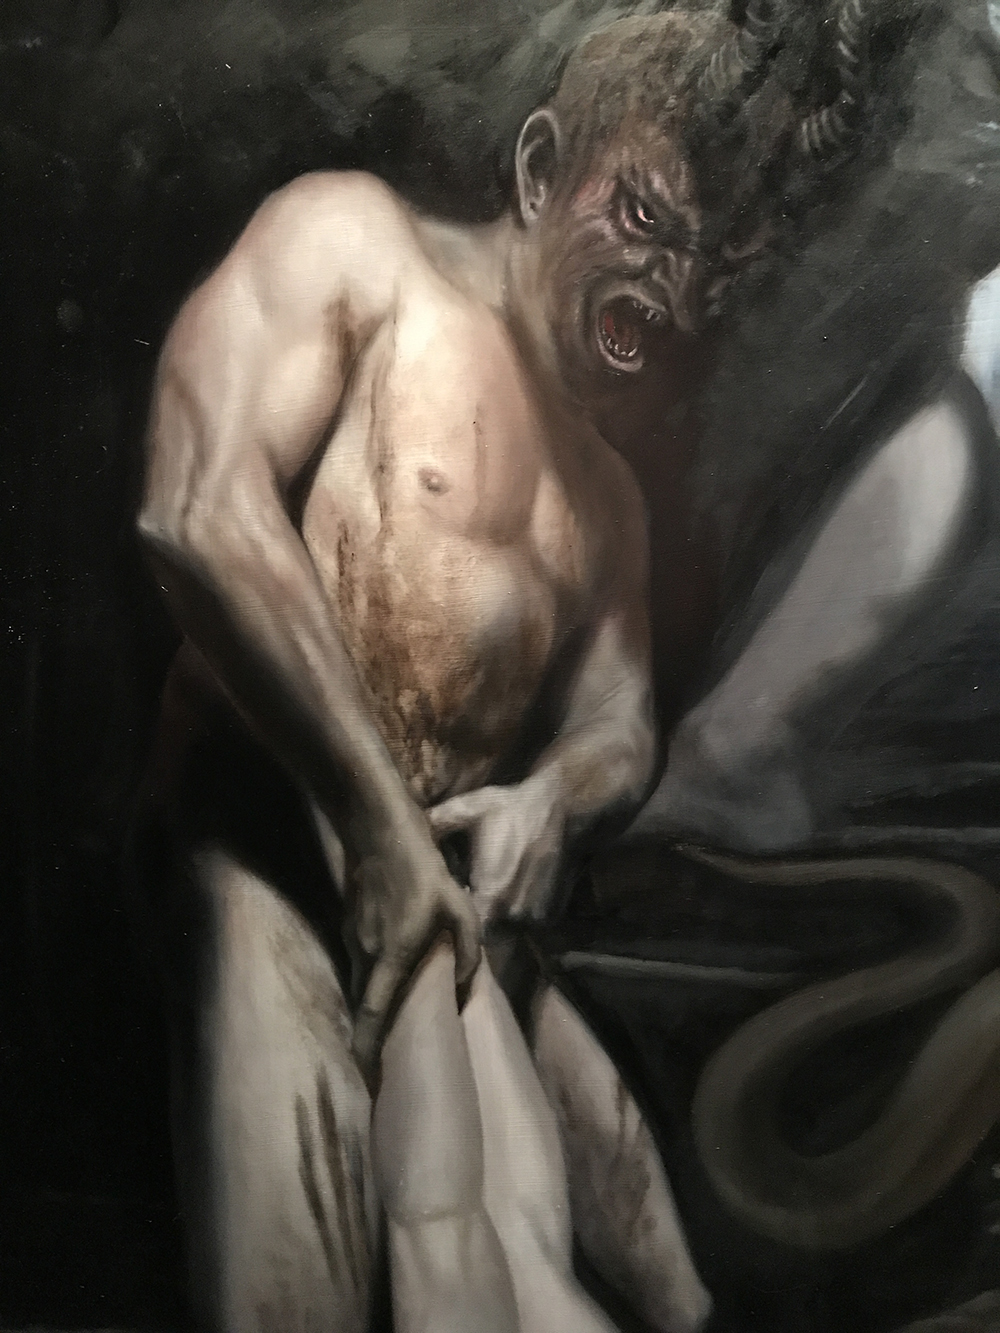 dante-inferno-demon-painting-web.jpg